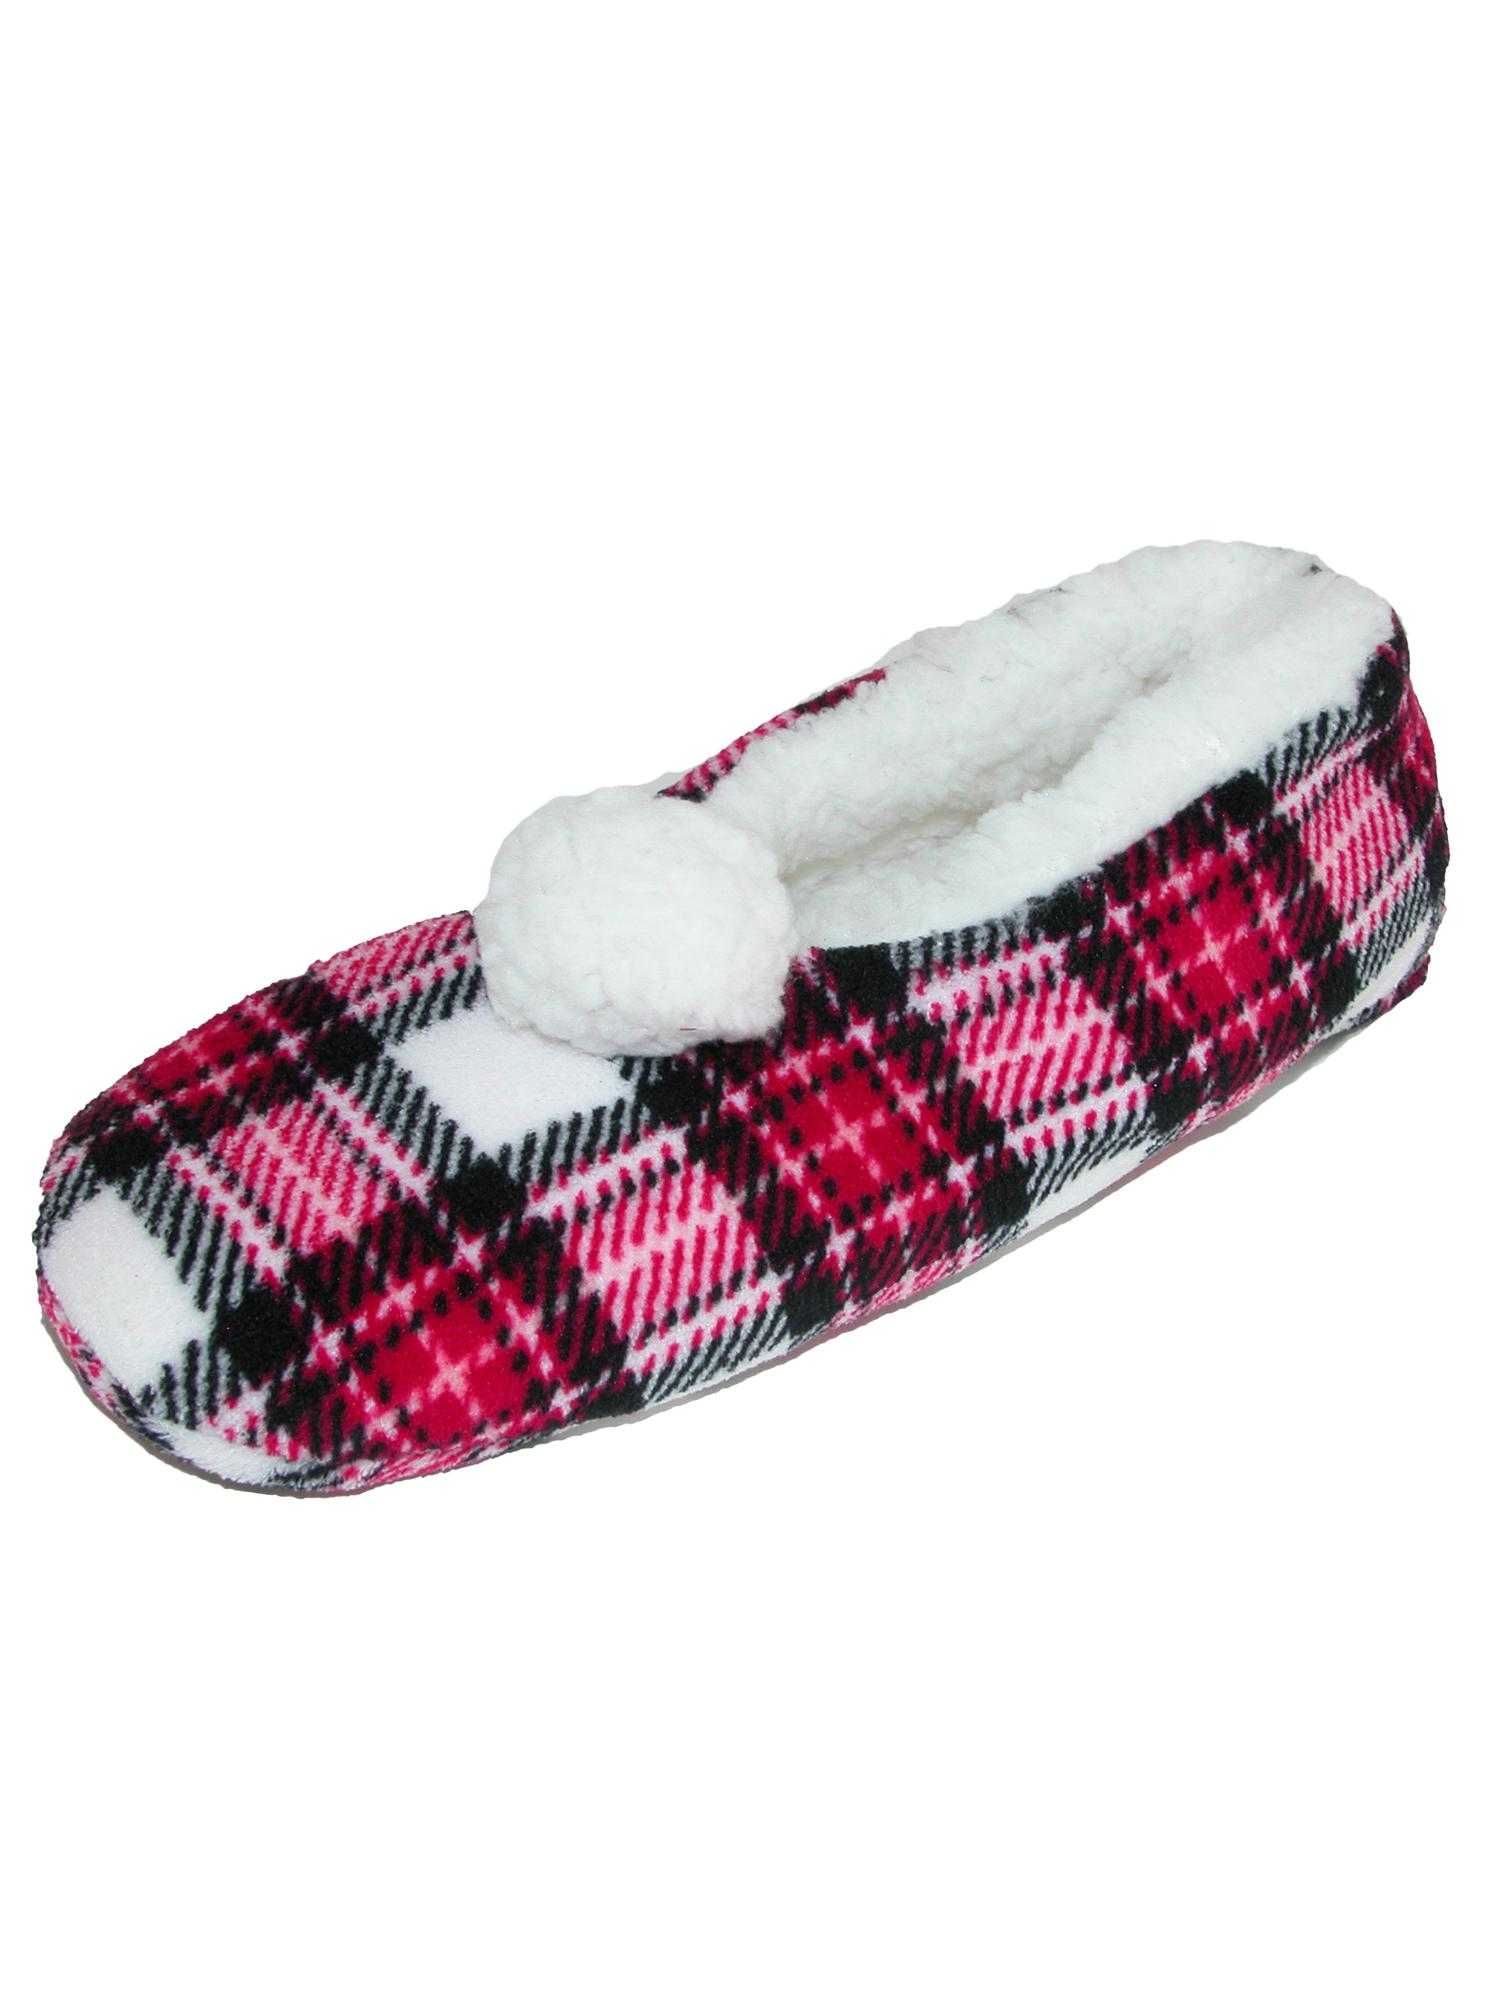 Alotta Knits Women's Plaid Printed Slippers with Pom Pom & Sherpa Fleece Lining